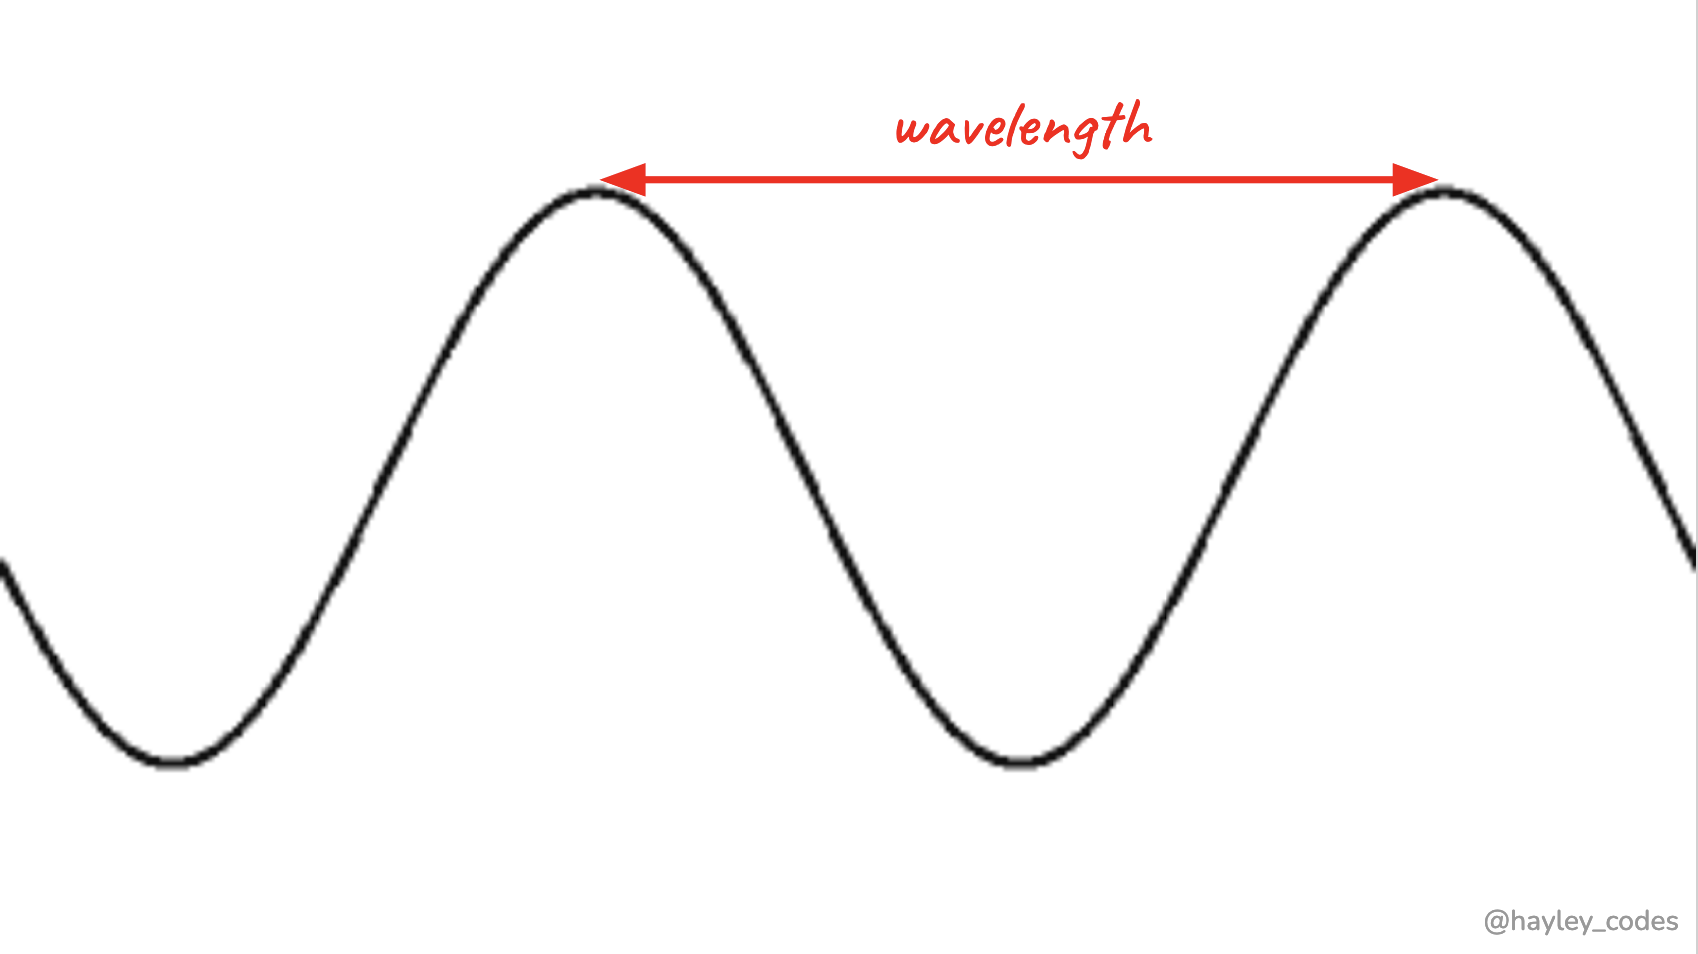 Diagram showing the distance between two crests in a wave.